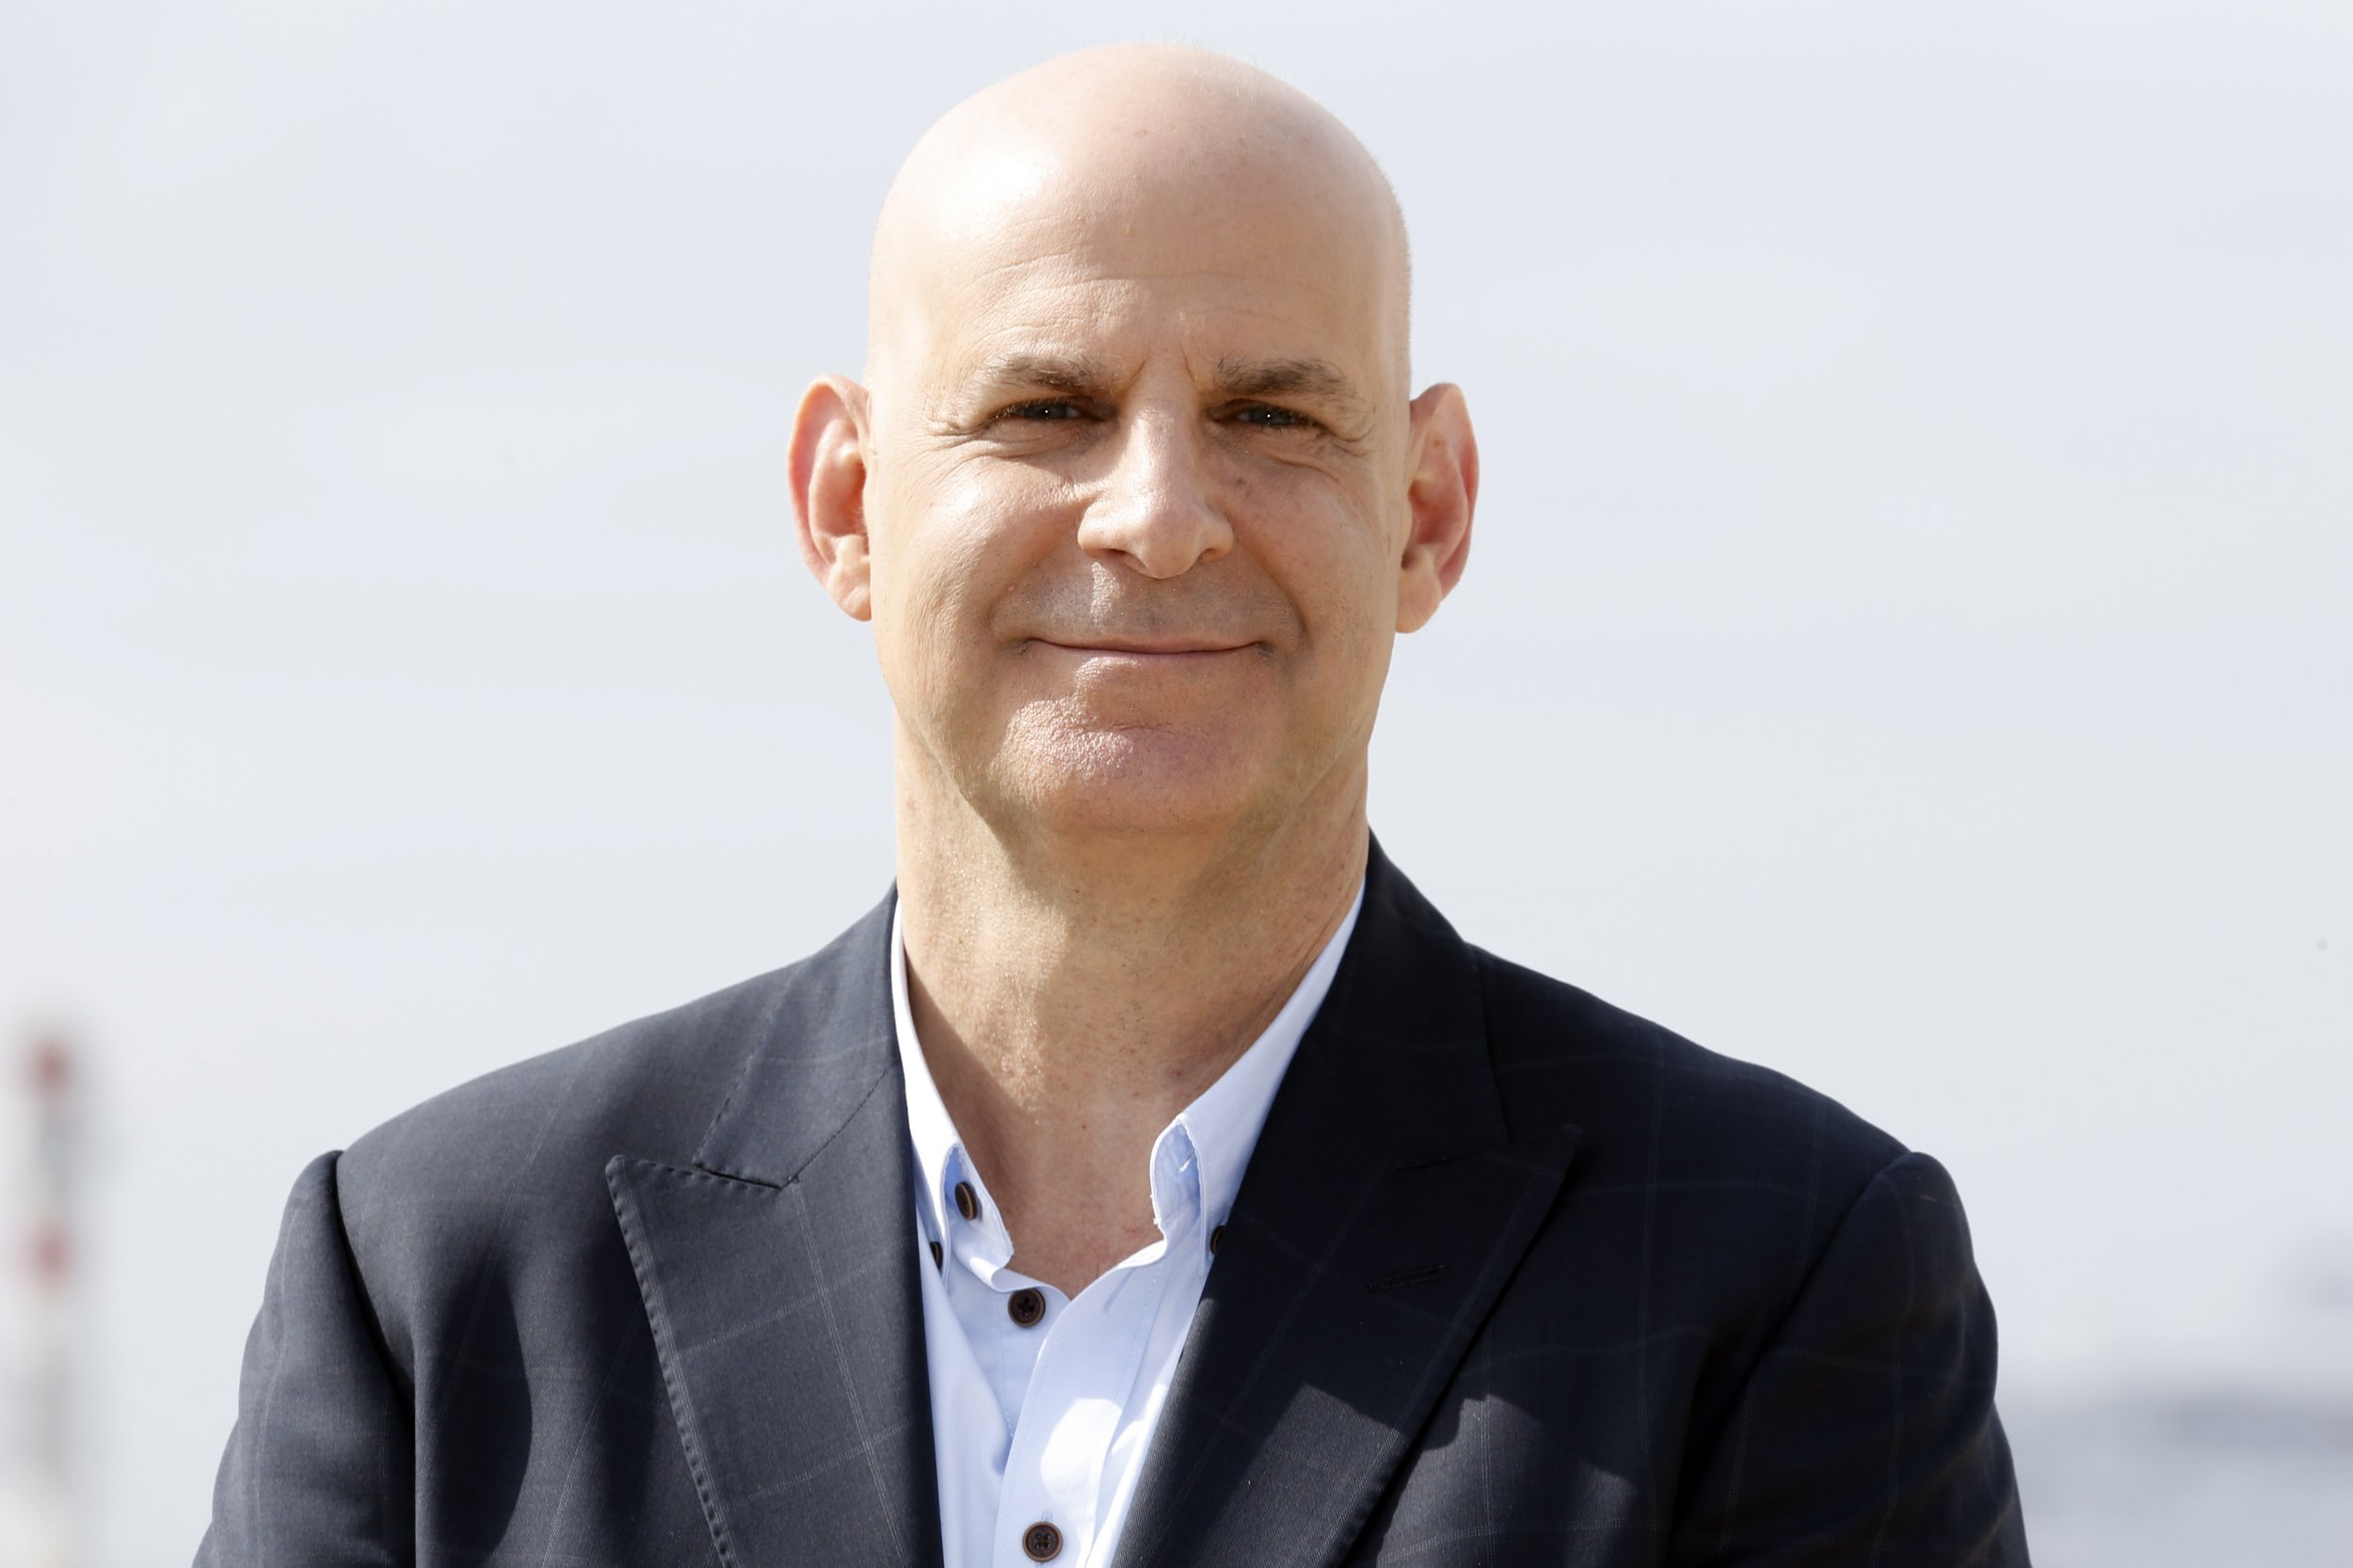 Harlan Coben On Donald Trump Julia Roberts And Uber Addiction